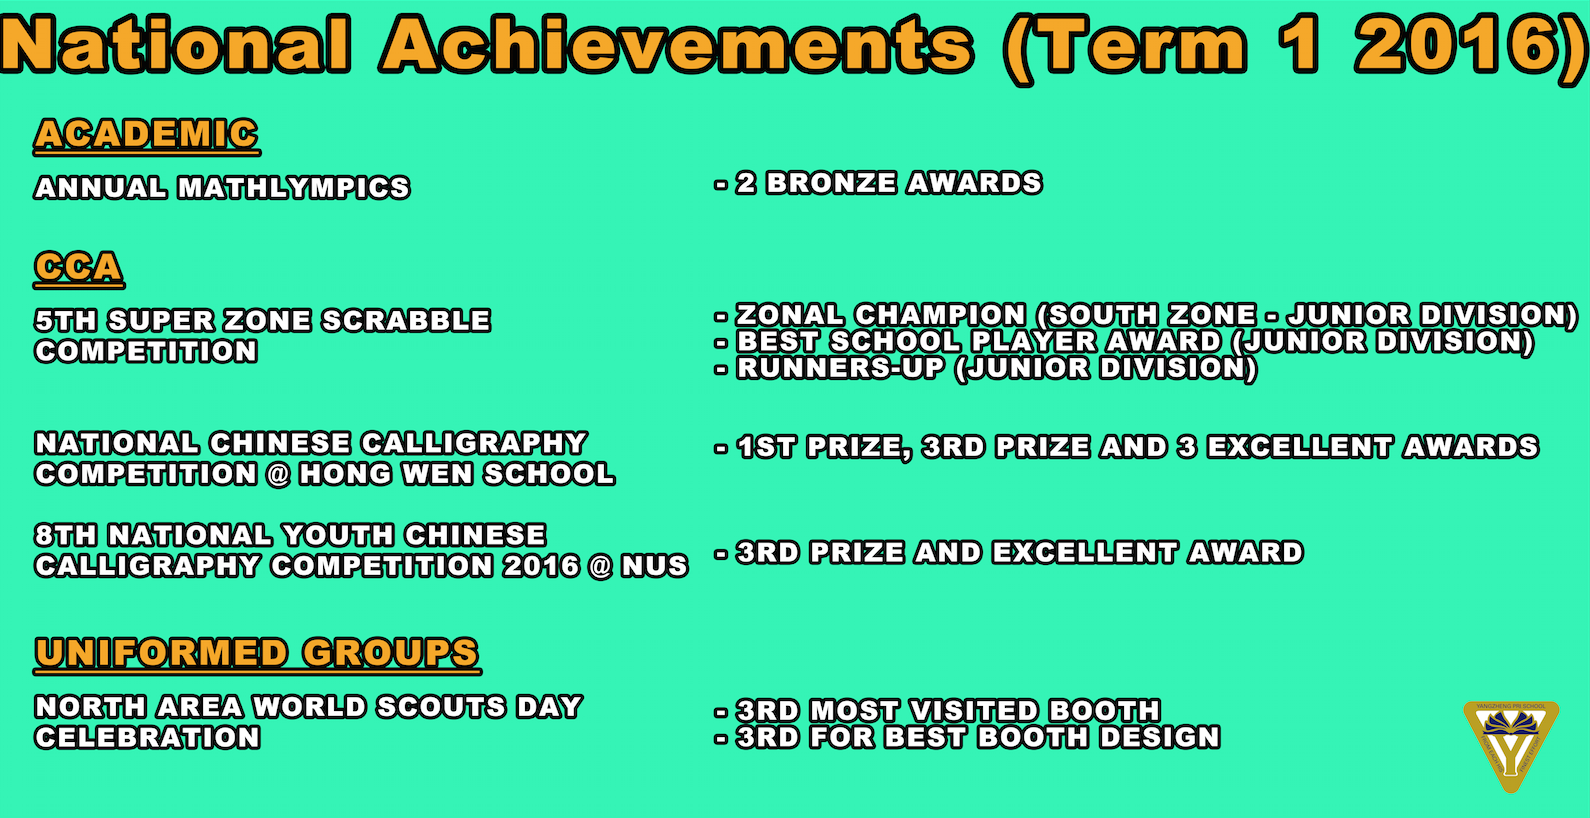 Achievement Term 1.png